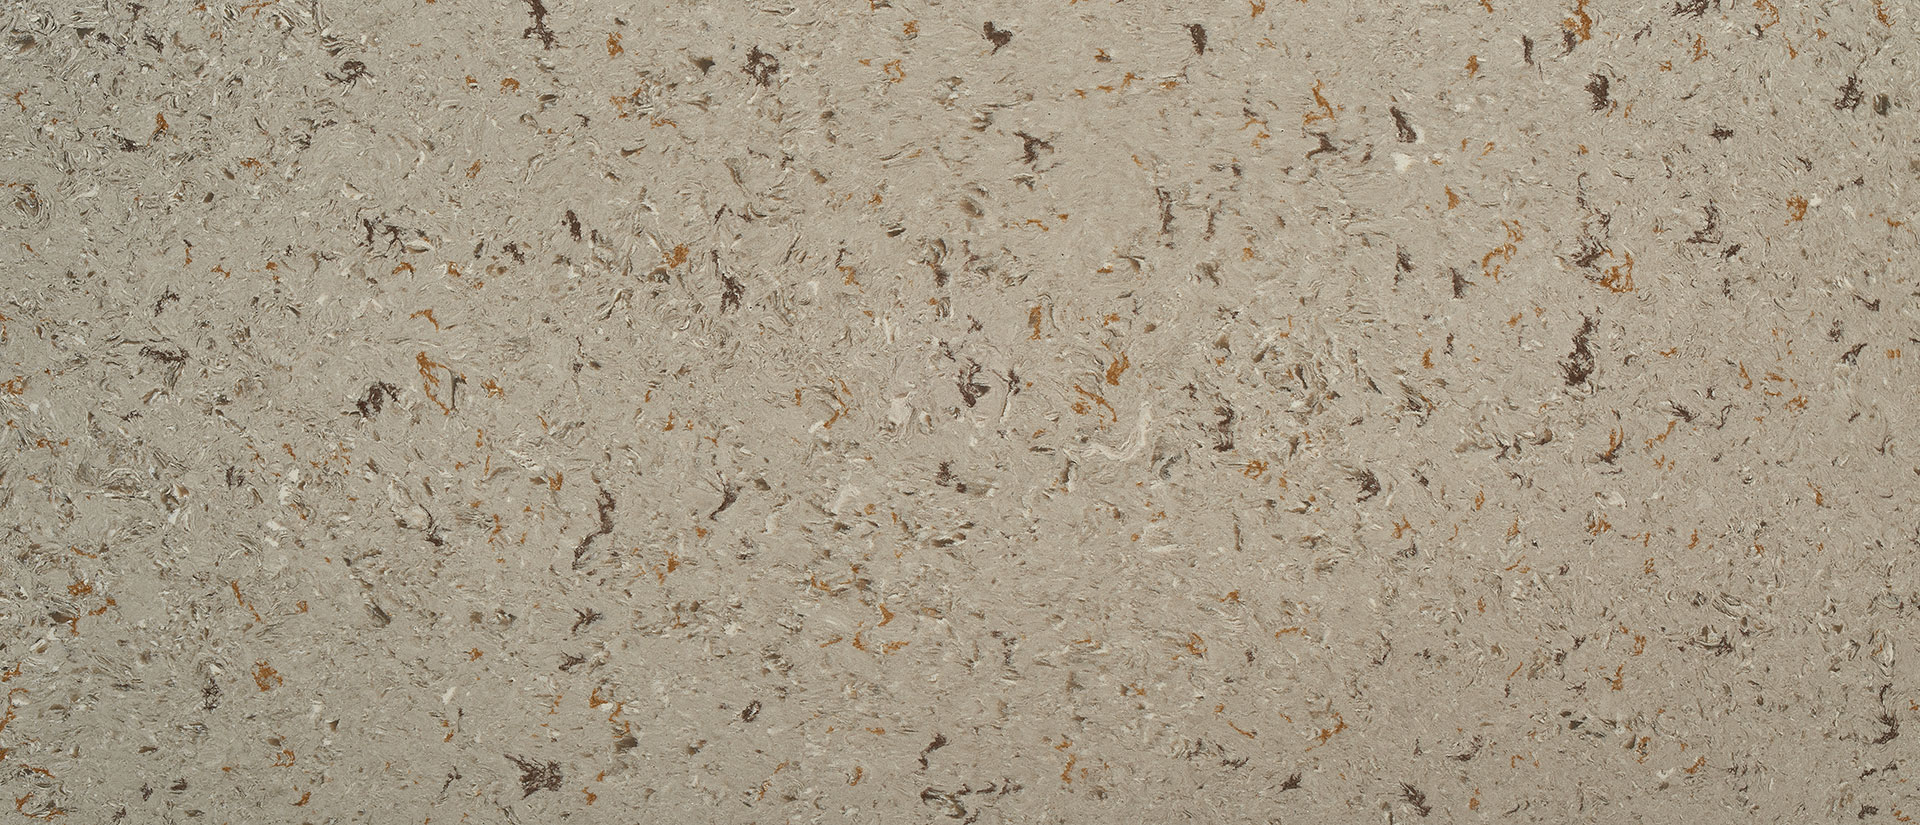 Taupe Quartz Countertop Chantilly Taupe Beige Quartz Countertops Q Premium Natural Quartz